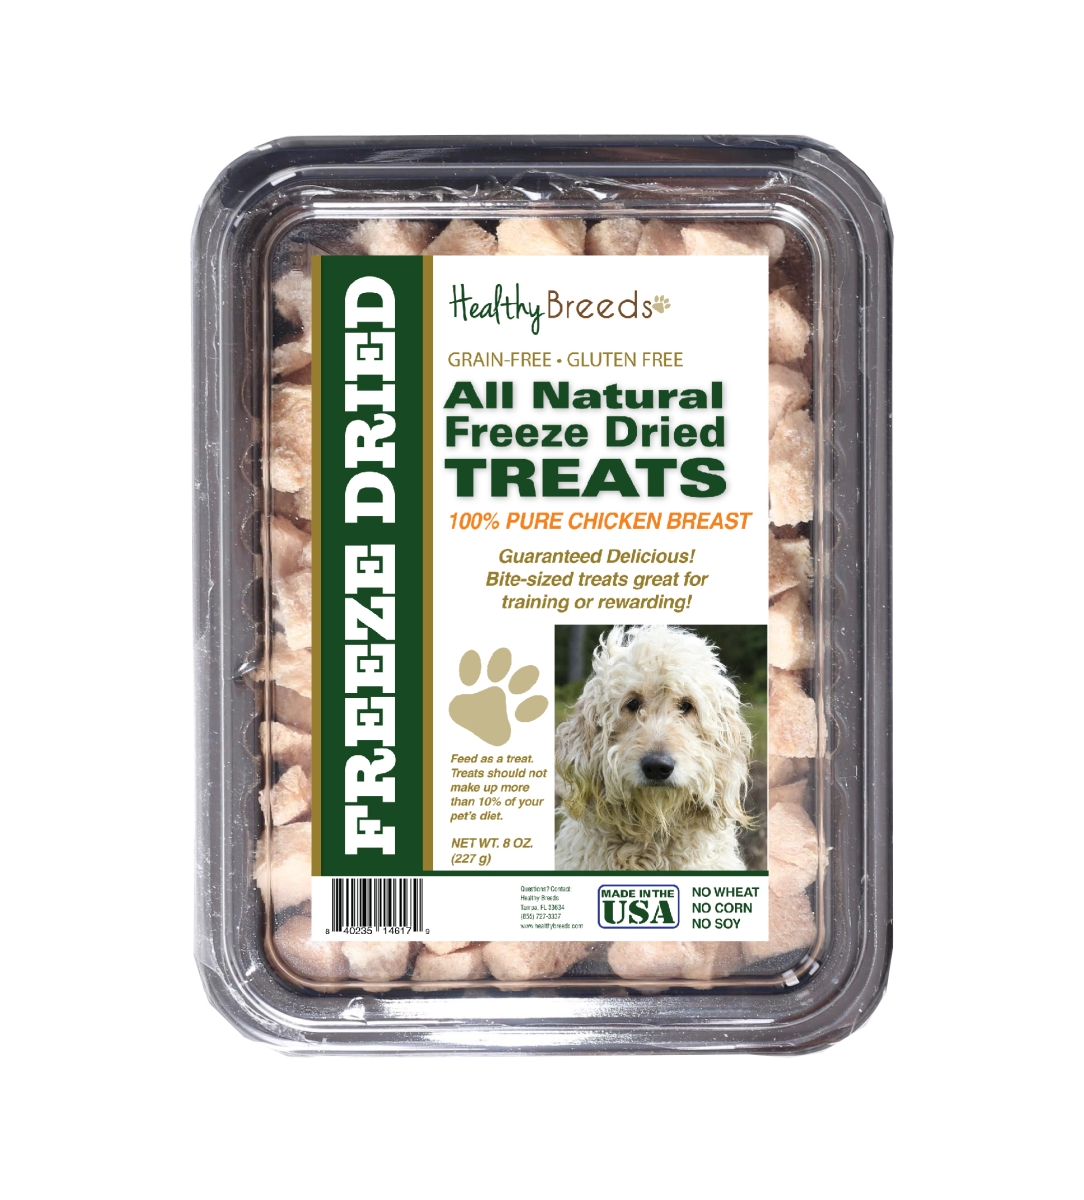 Healthy Breeds 840235146179 8 oz Goldendoodle All Natural Freeze Dried Treats Chicken Breast